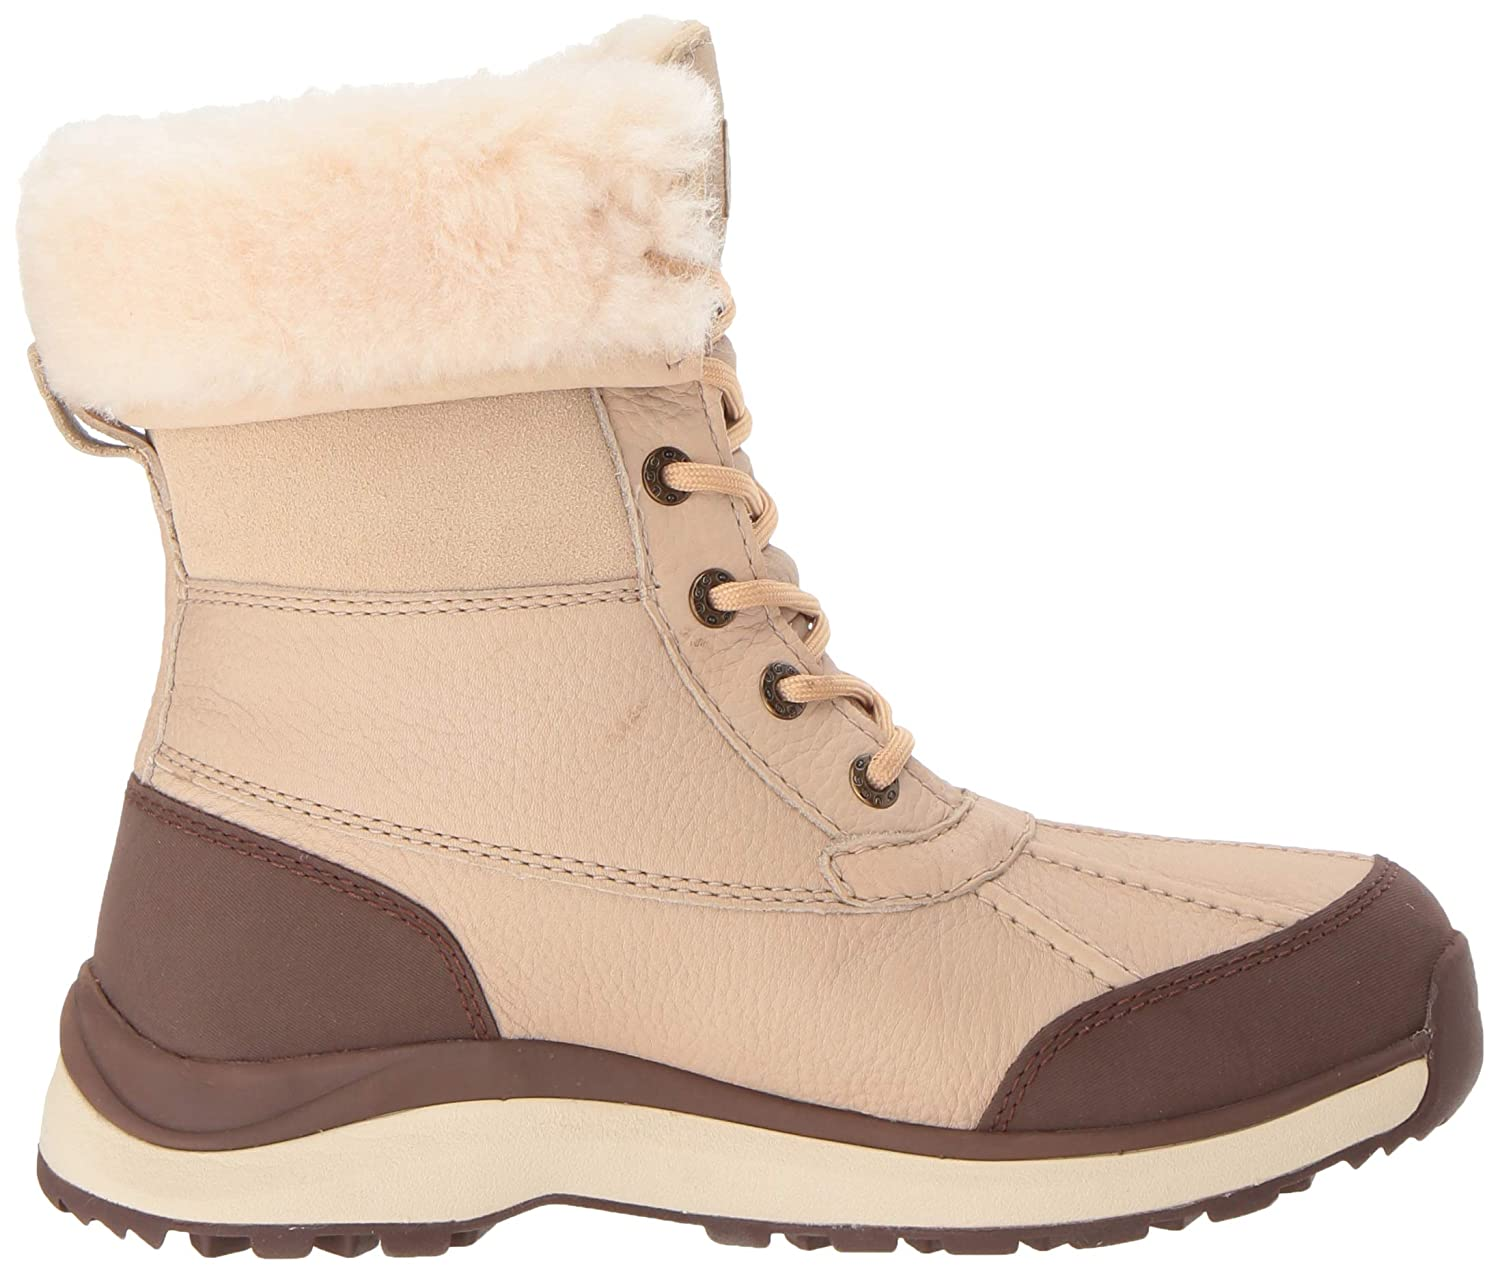 Ruth Fast on   Ugg boots outfit, Ugg boots, Ugg snow boots